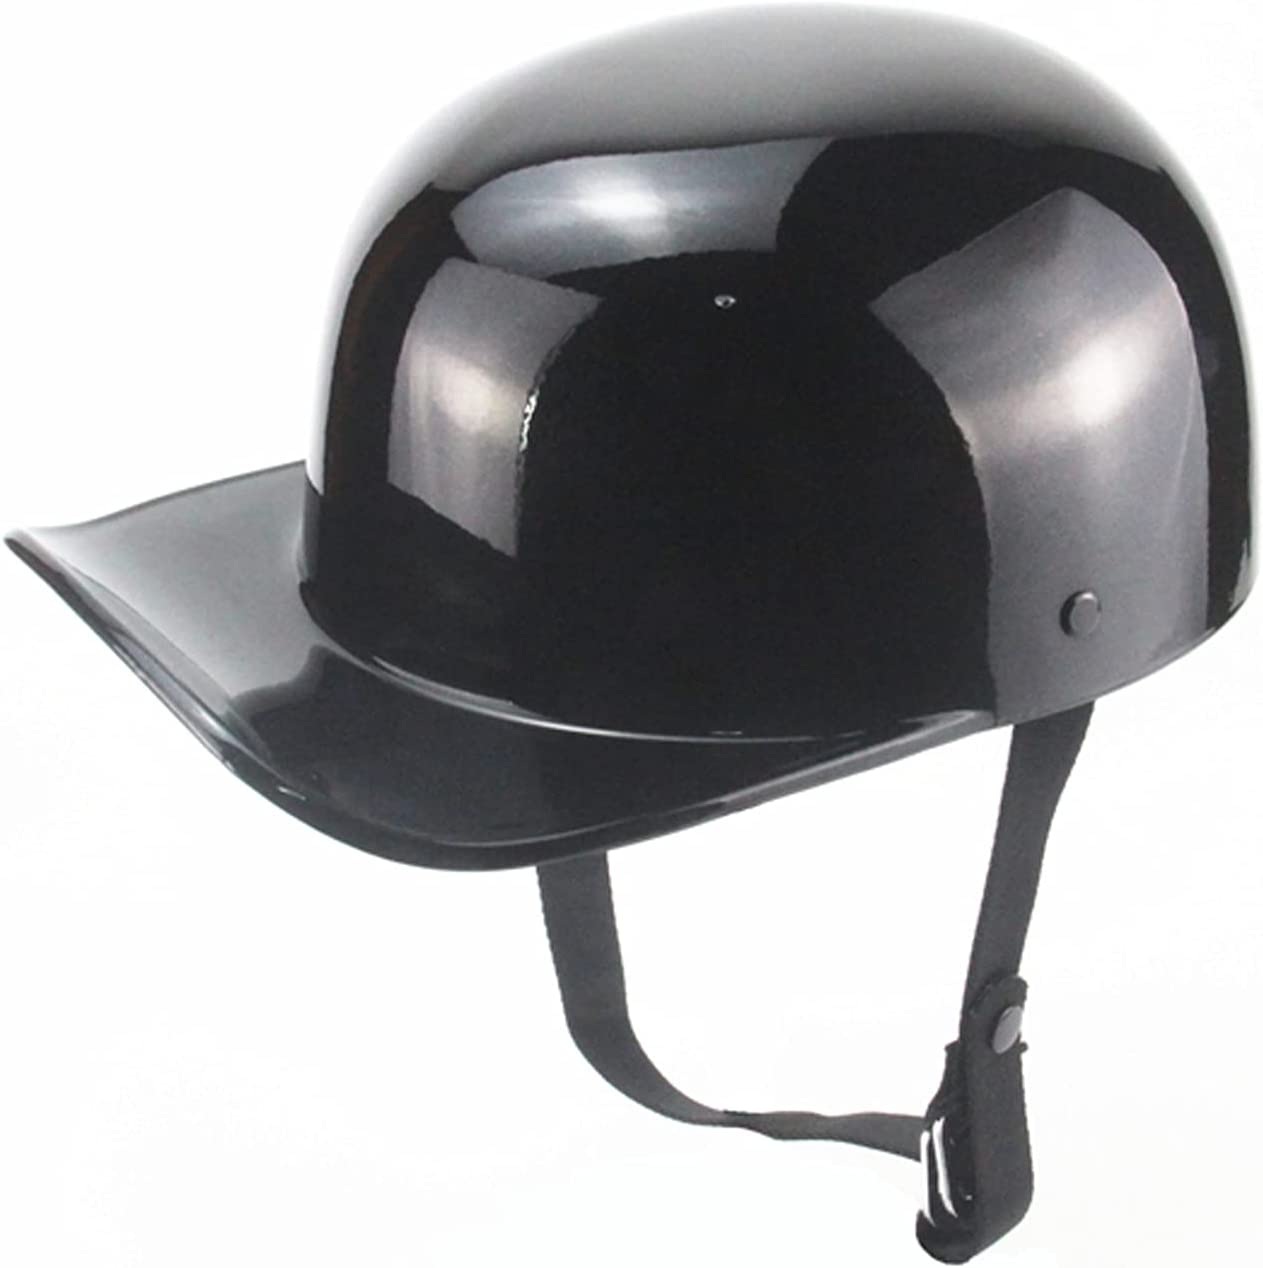 LTJLBHJ Cycle Chicago Mall Helmet for Men and Women Motorcycle Super-cheap Half L Helment